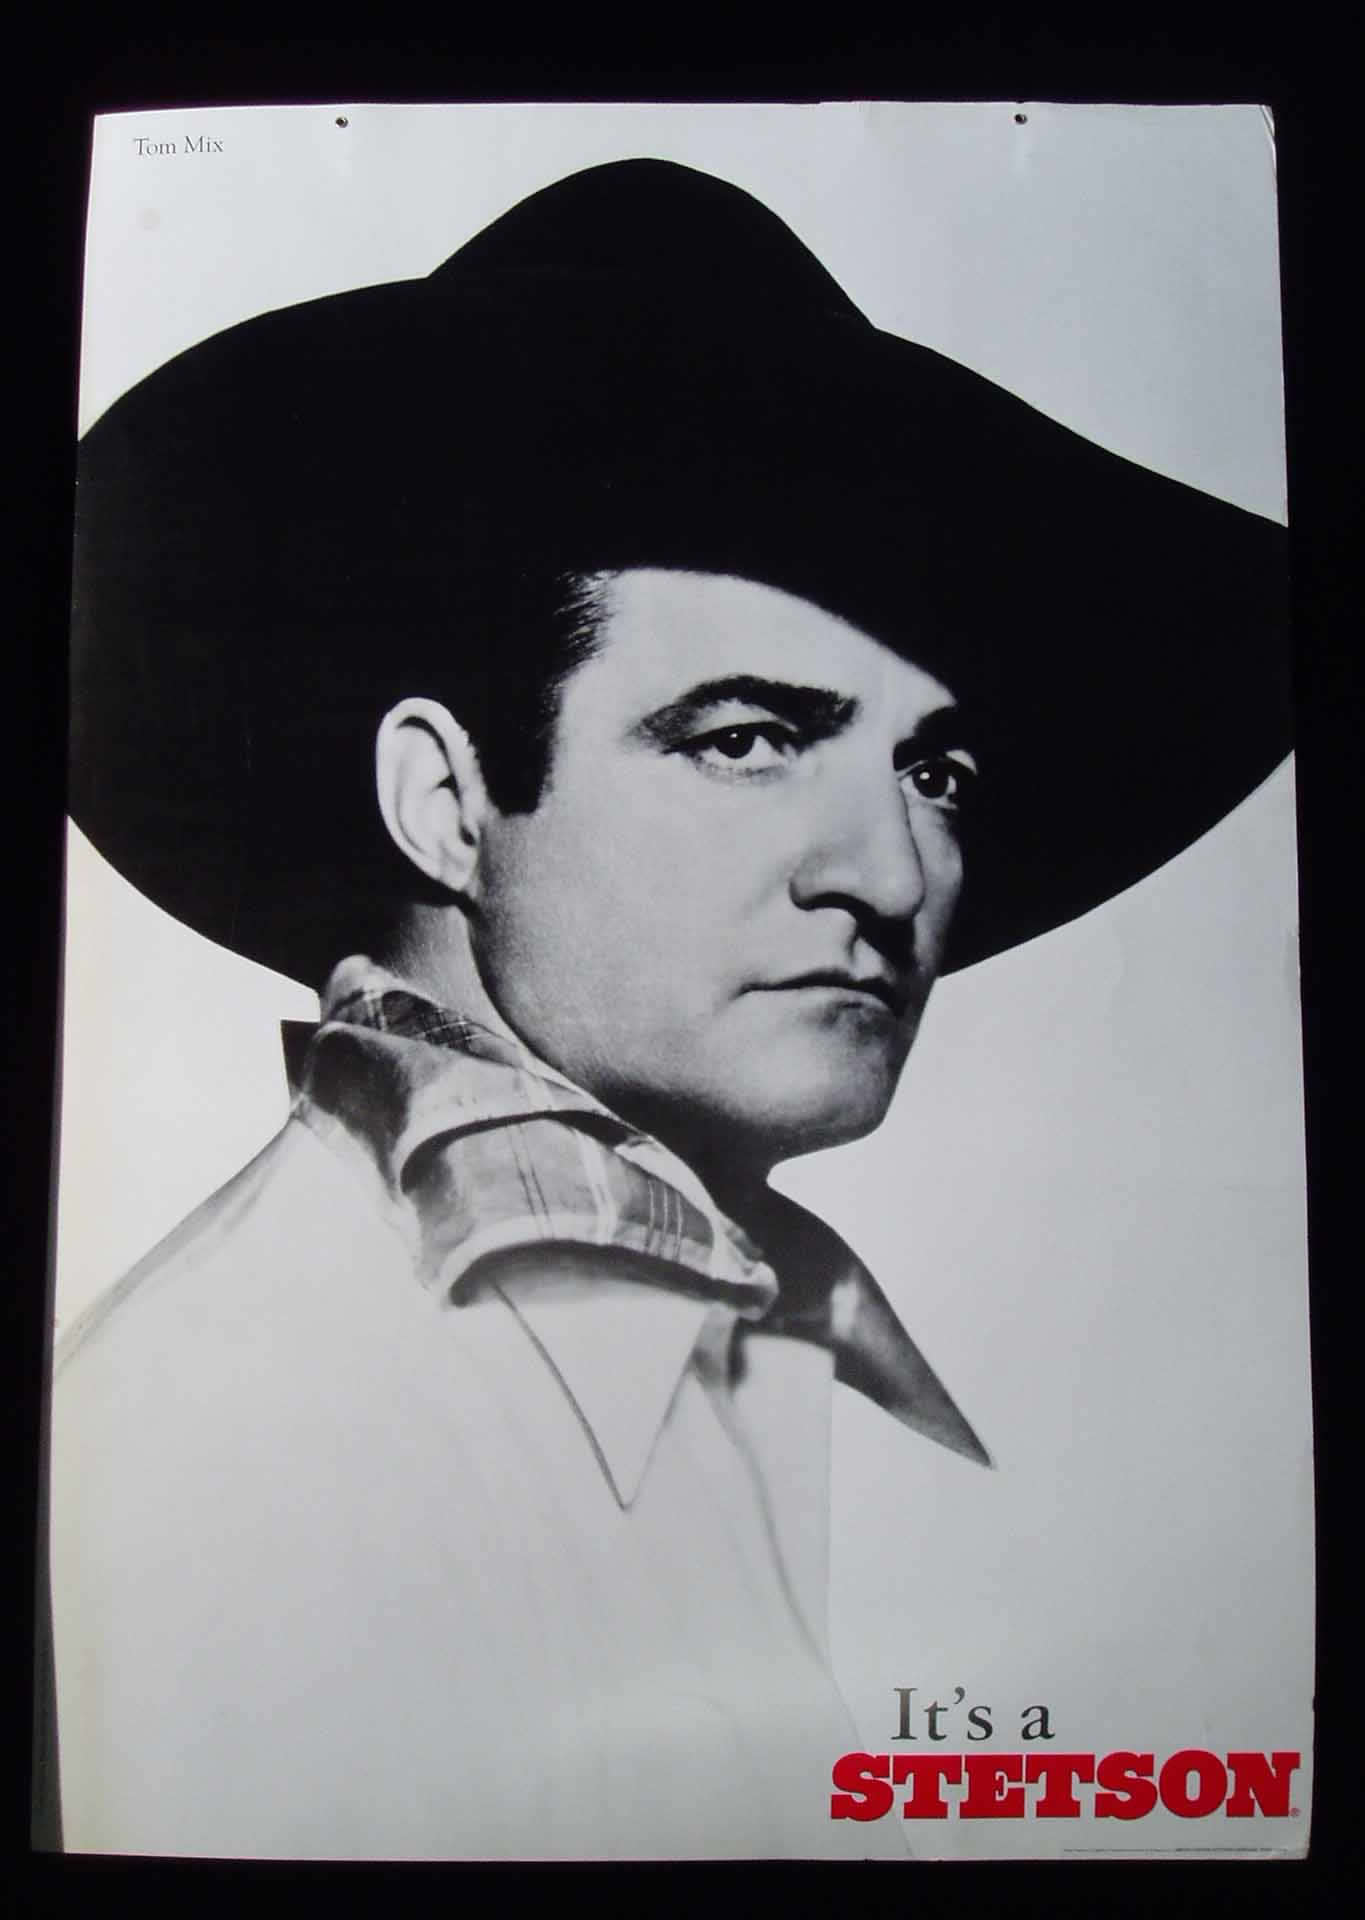 Tom Mix wearing a Stetson